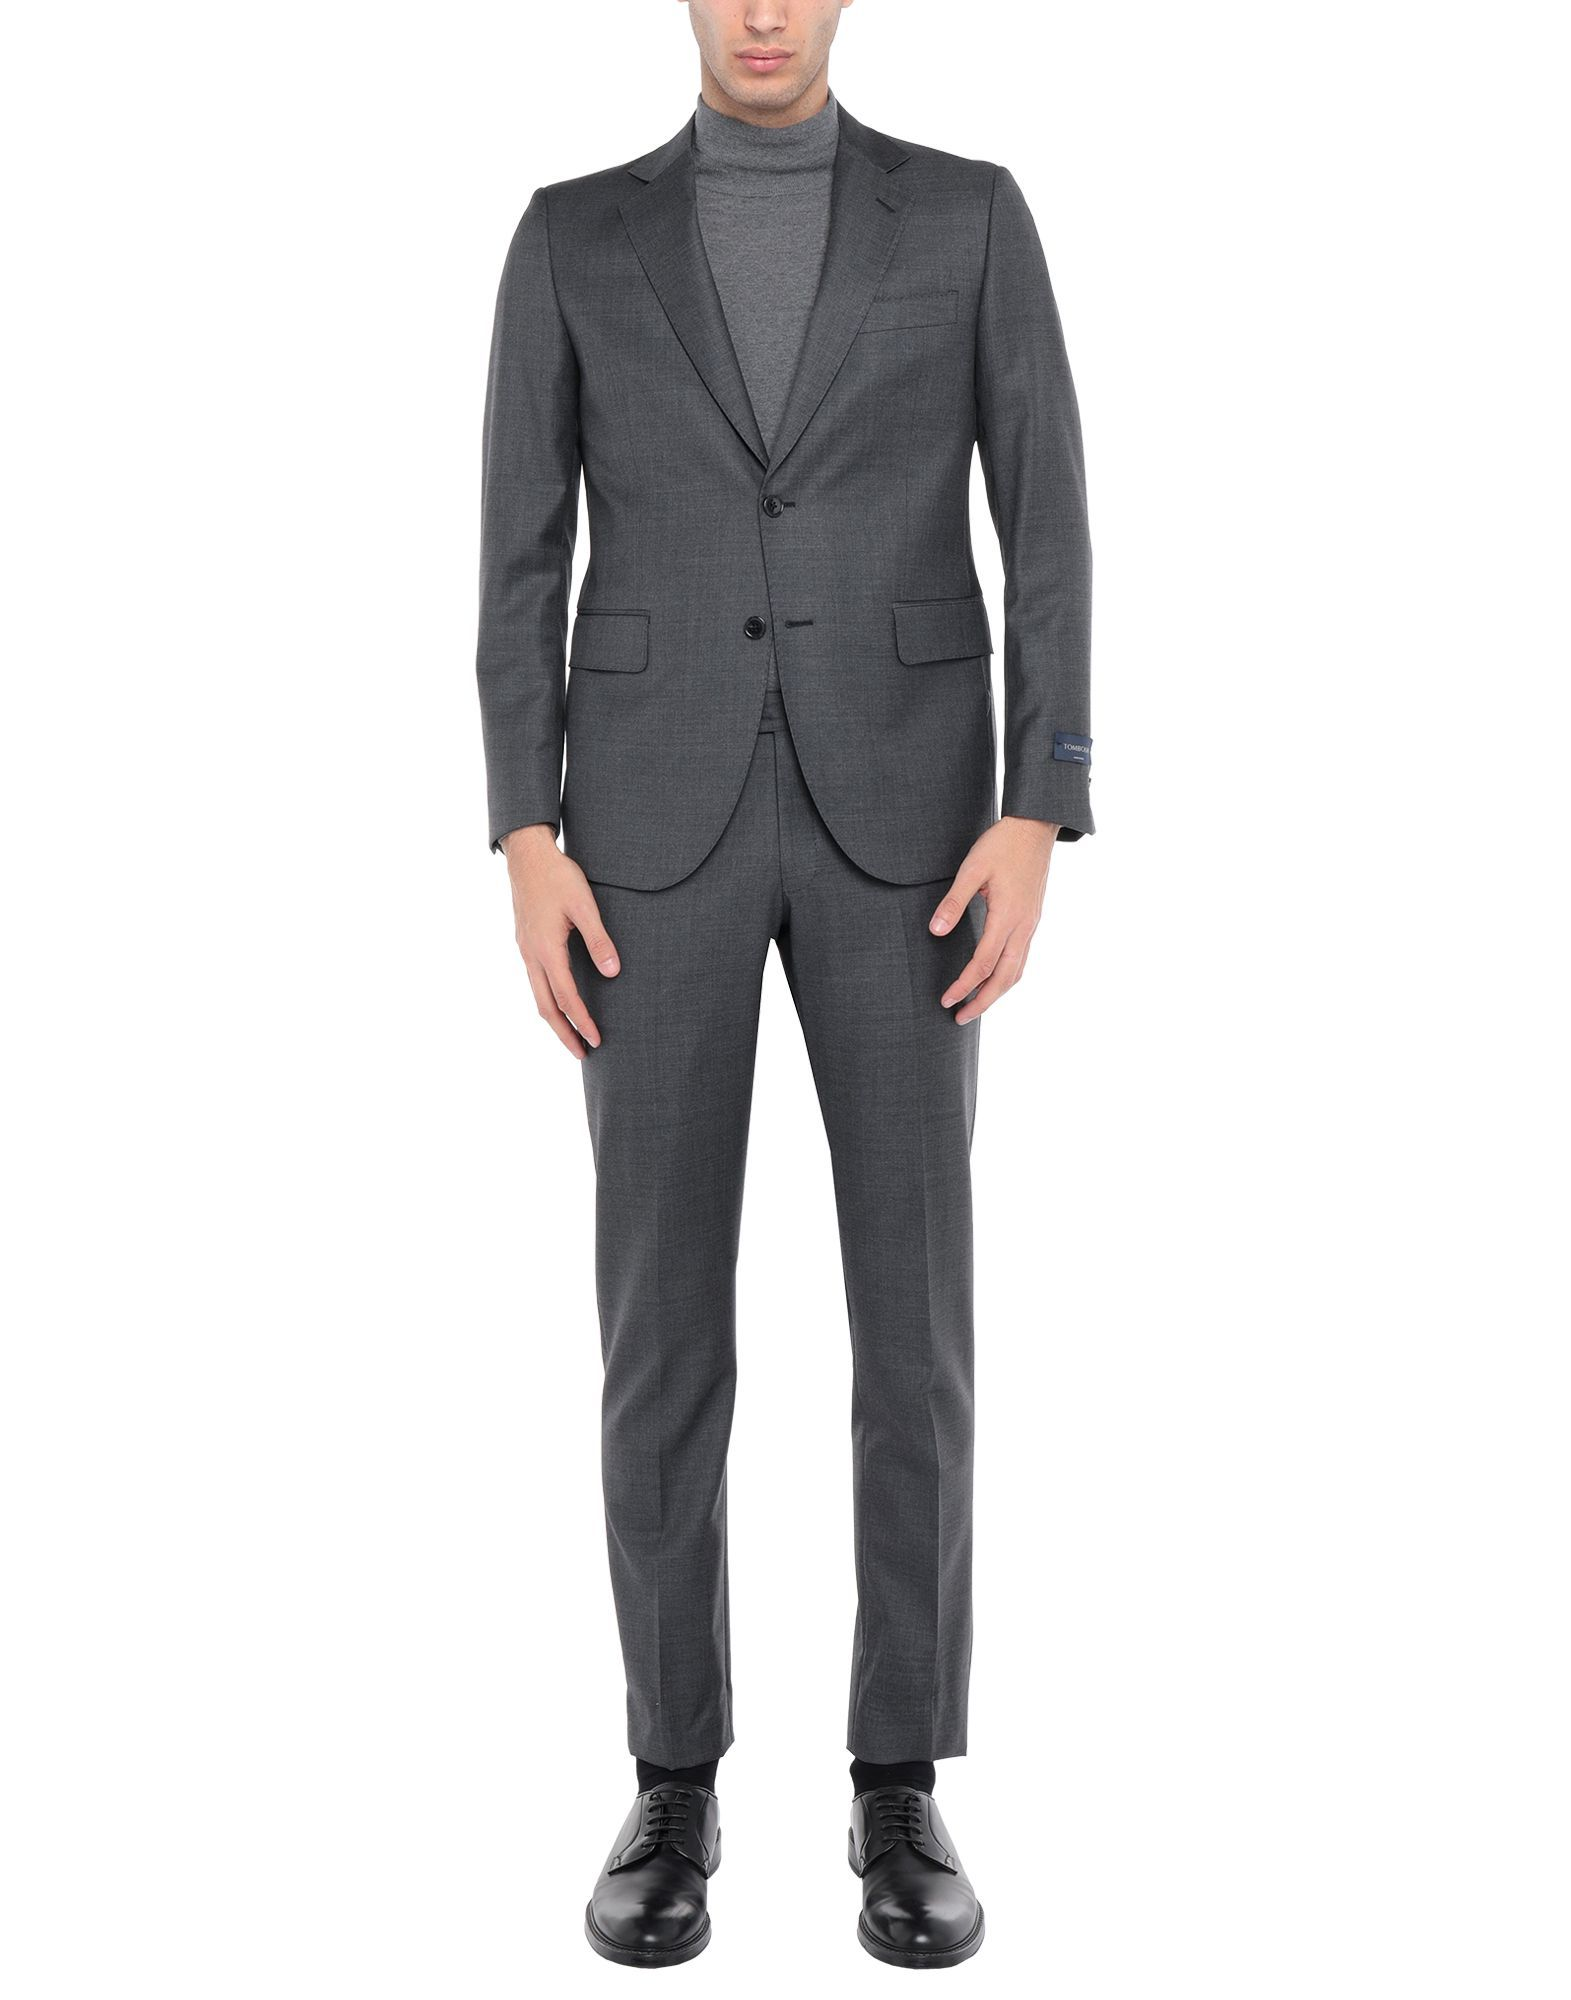 Tombolini Lead Virgin Wool Single Breasted Suit